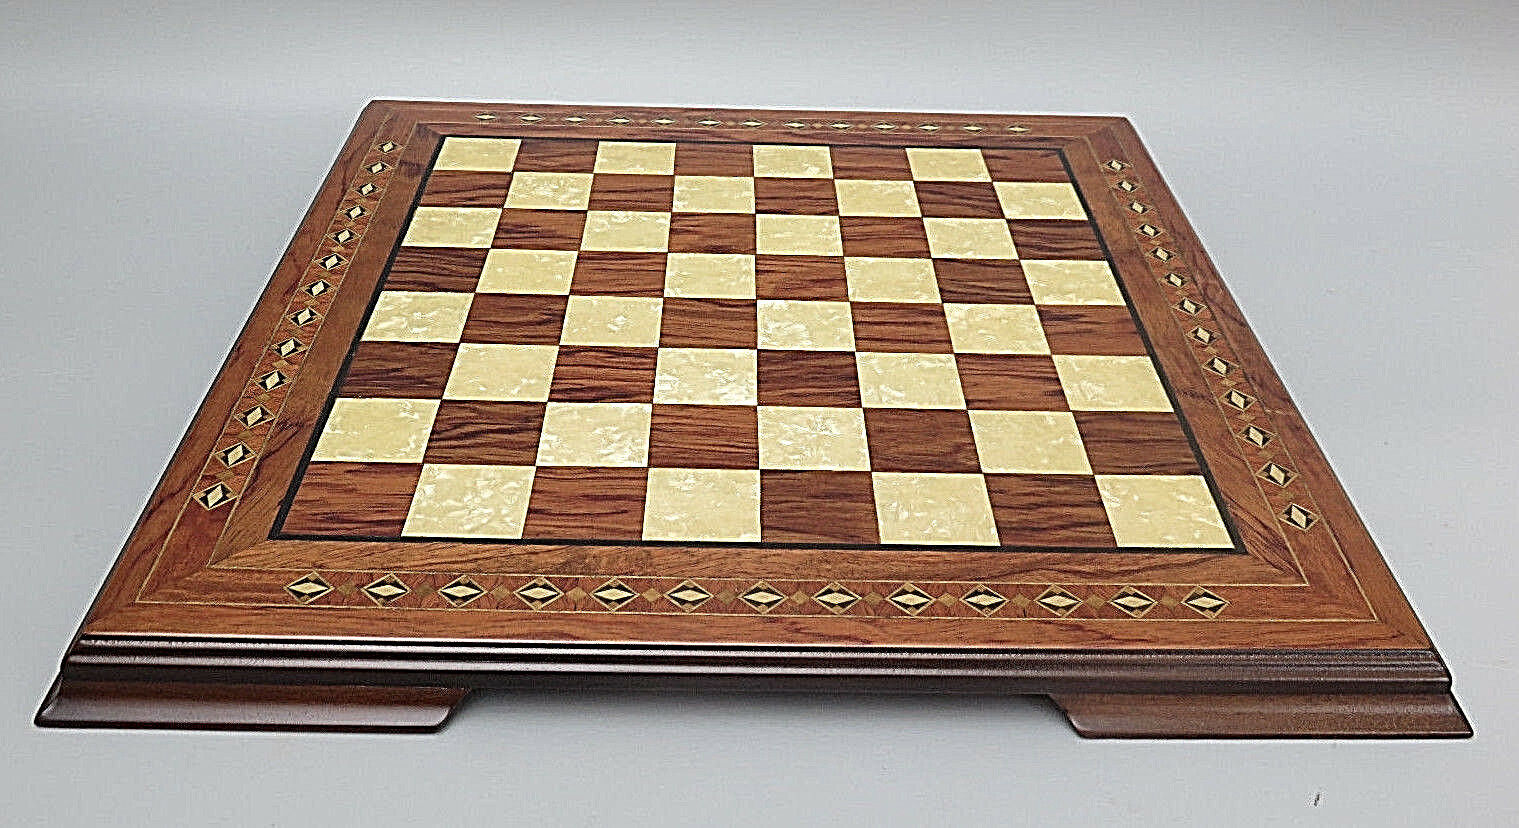 CHESS BOARD HAND CRAFTED SOLID WALNUT WOOD  HELENA  MOTHER OF PEARL 17 -2654W